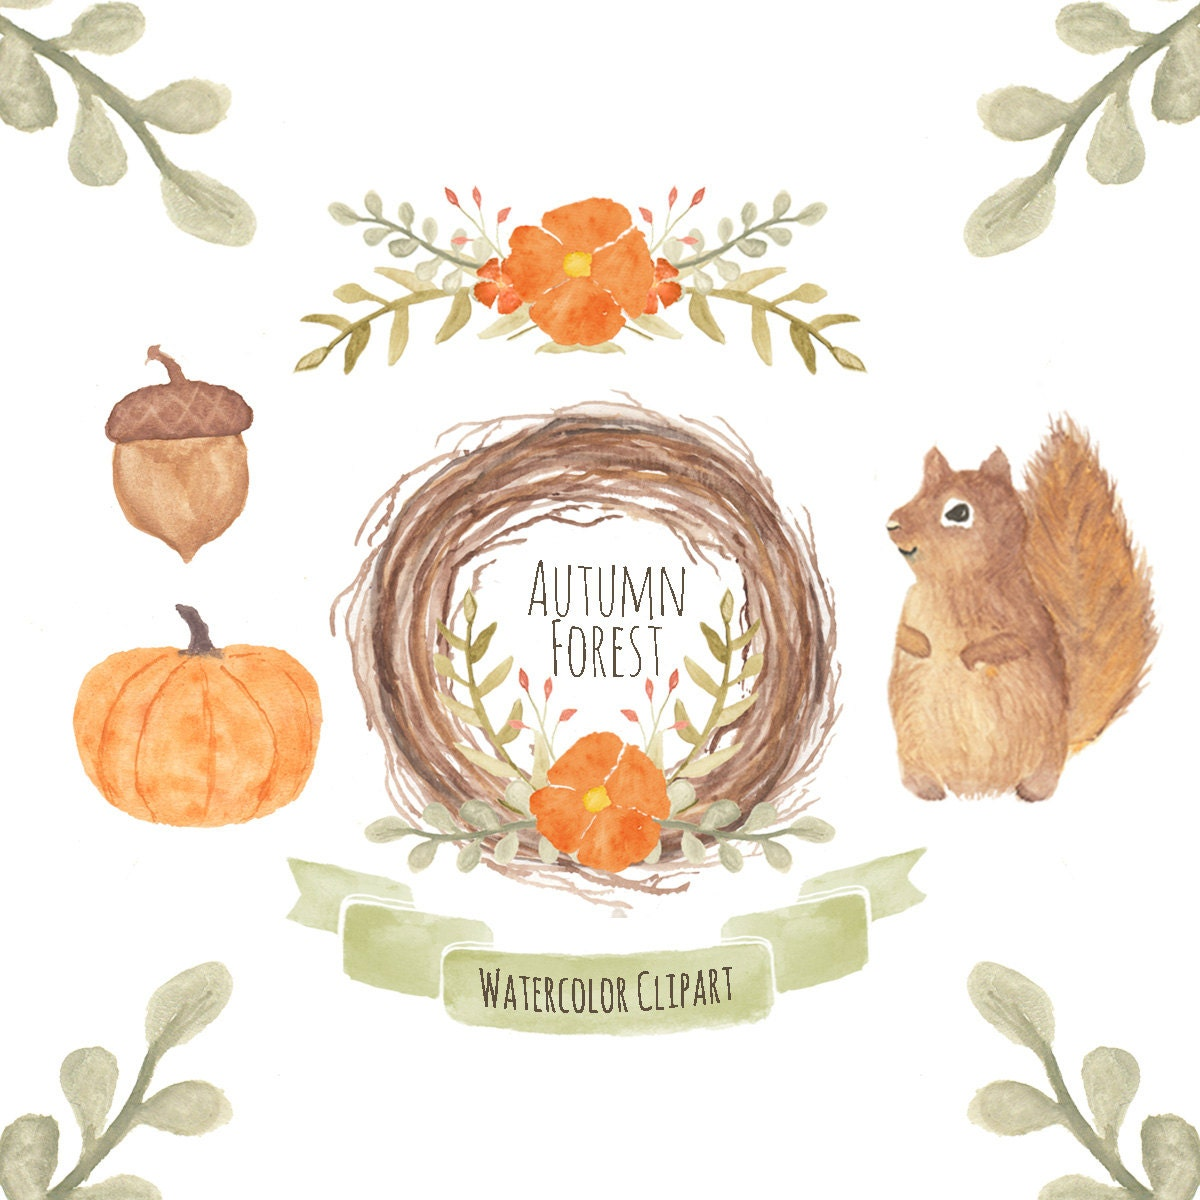 Fall clipart Autumn clipart watercolor flower wreath